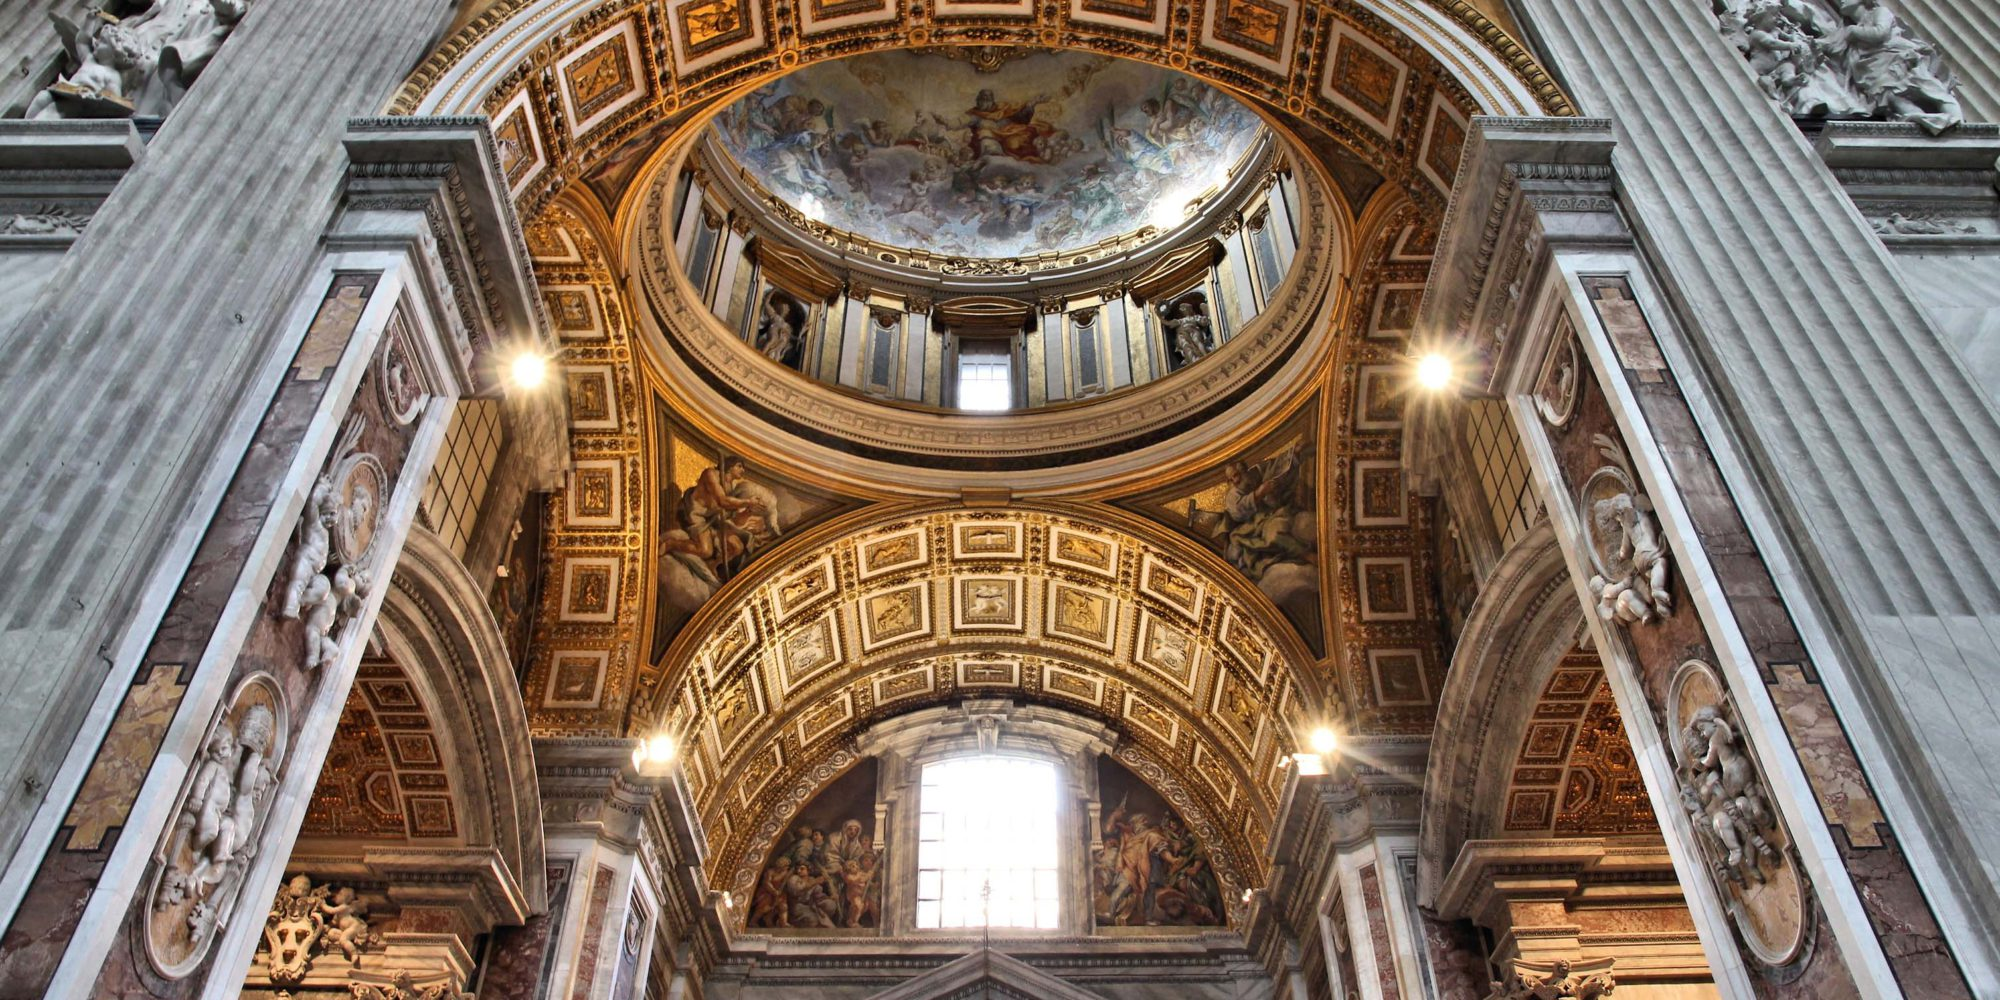 Saint Peter's Basilica is the largest church worldwide rich in artistic treasures among the most admired and loved in the world